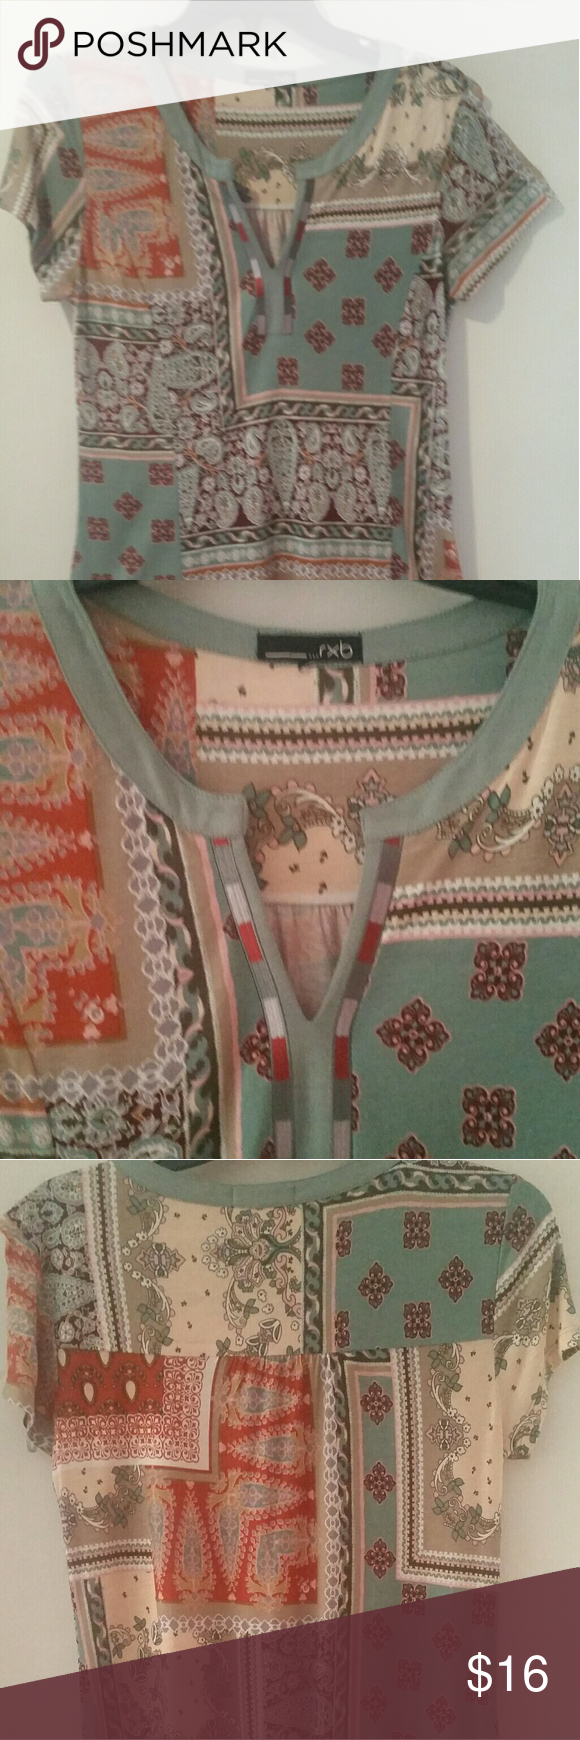 High Low Symmetrical Tunic Pretty soft muted colors of pale blues,pinks, oranges browns & tan. Super soft fabric with piped neck line and short sleeves. Very nice with leggings or skinny jeans. NWOT . Never worn. rxb Tops Tunics